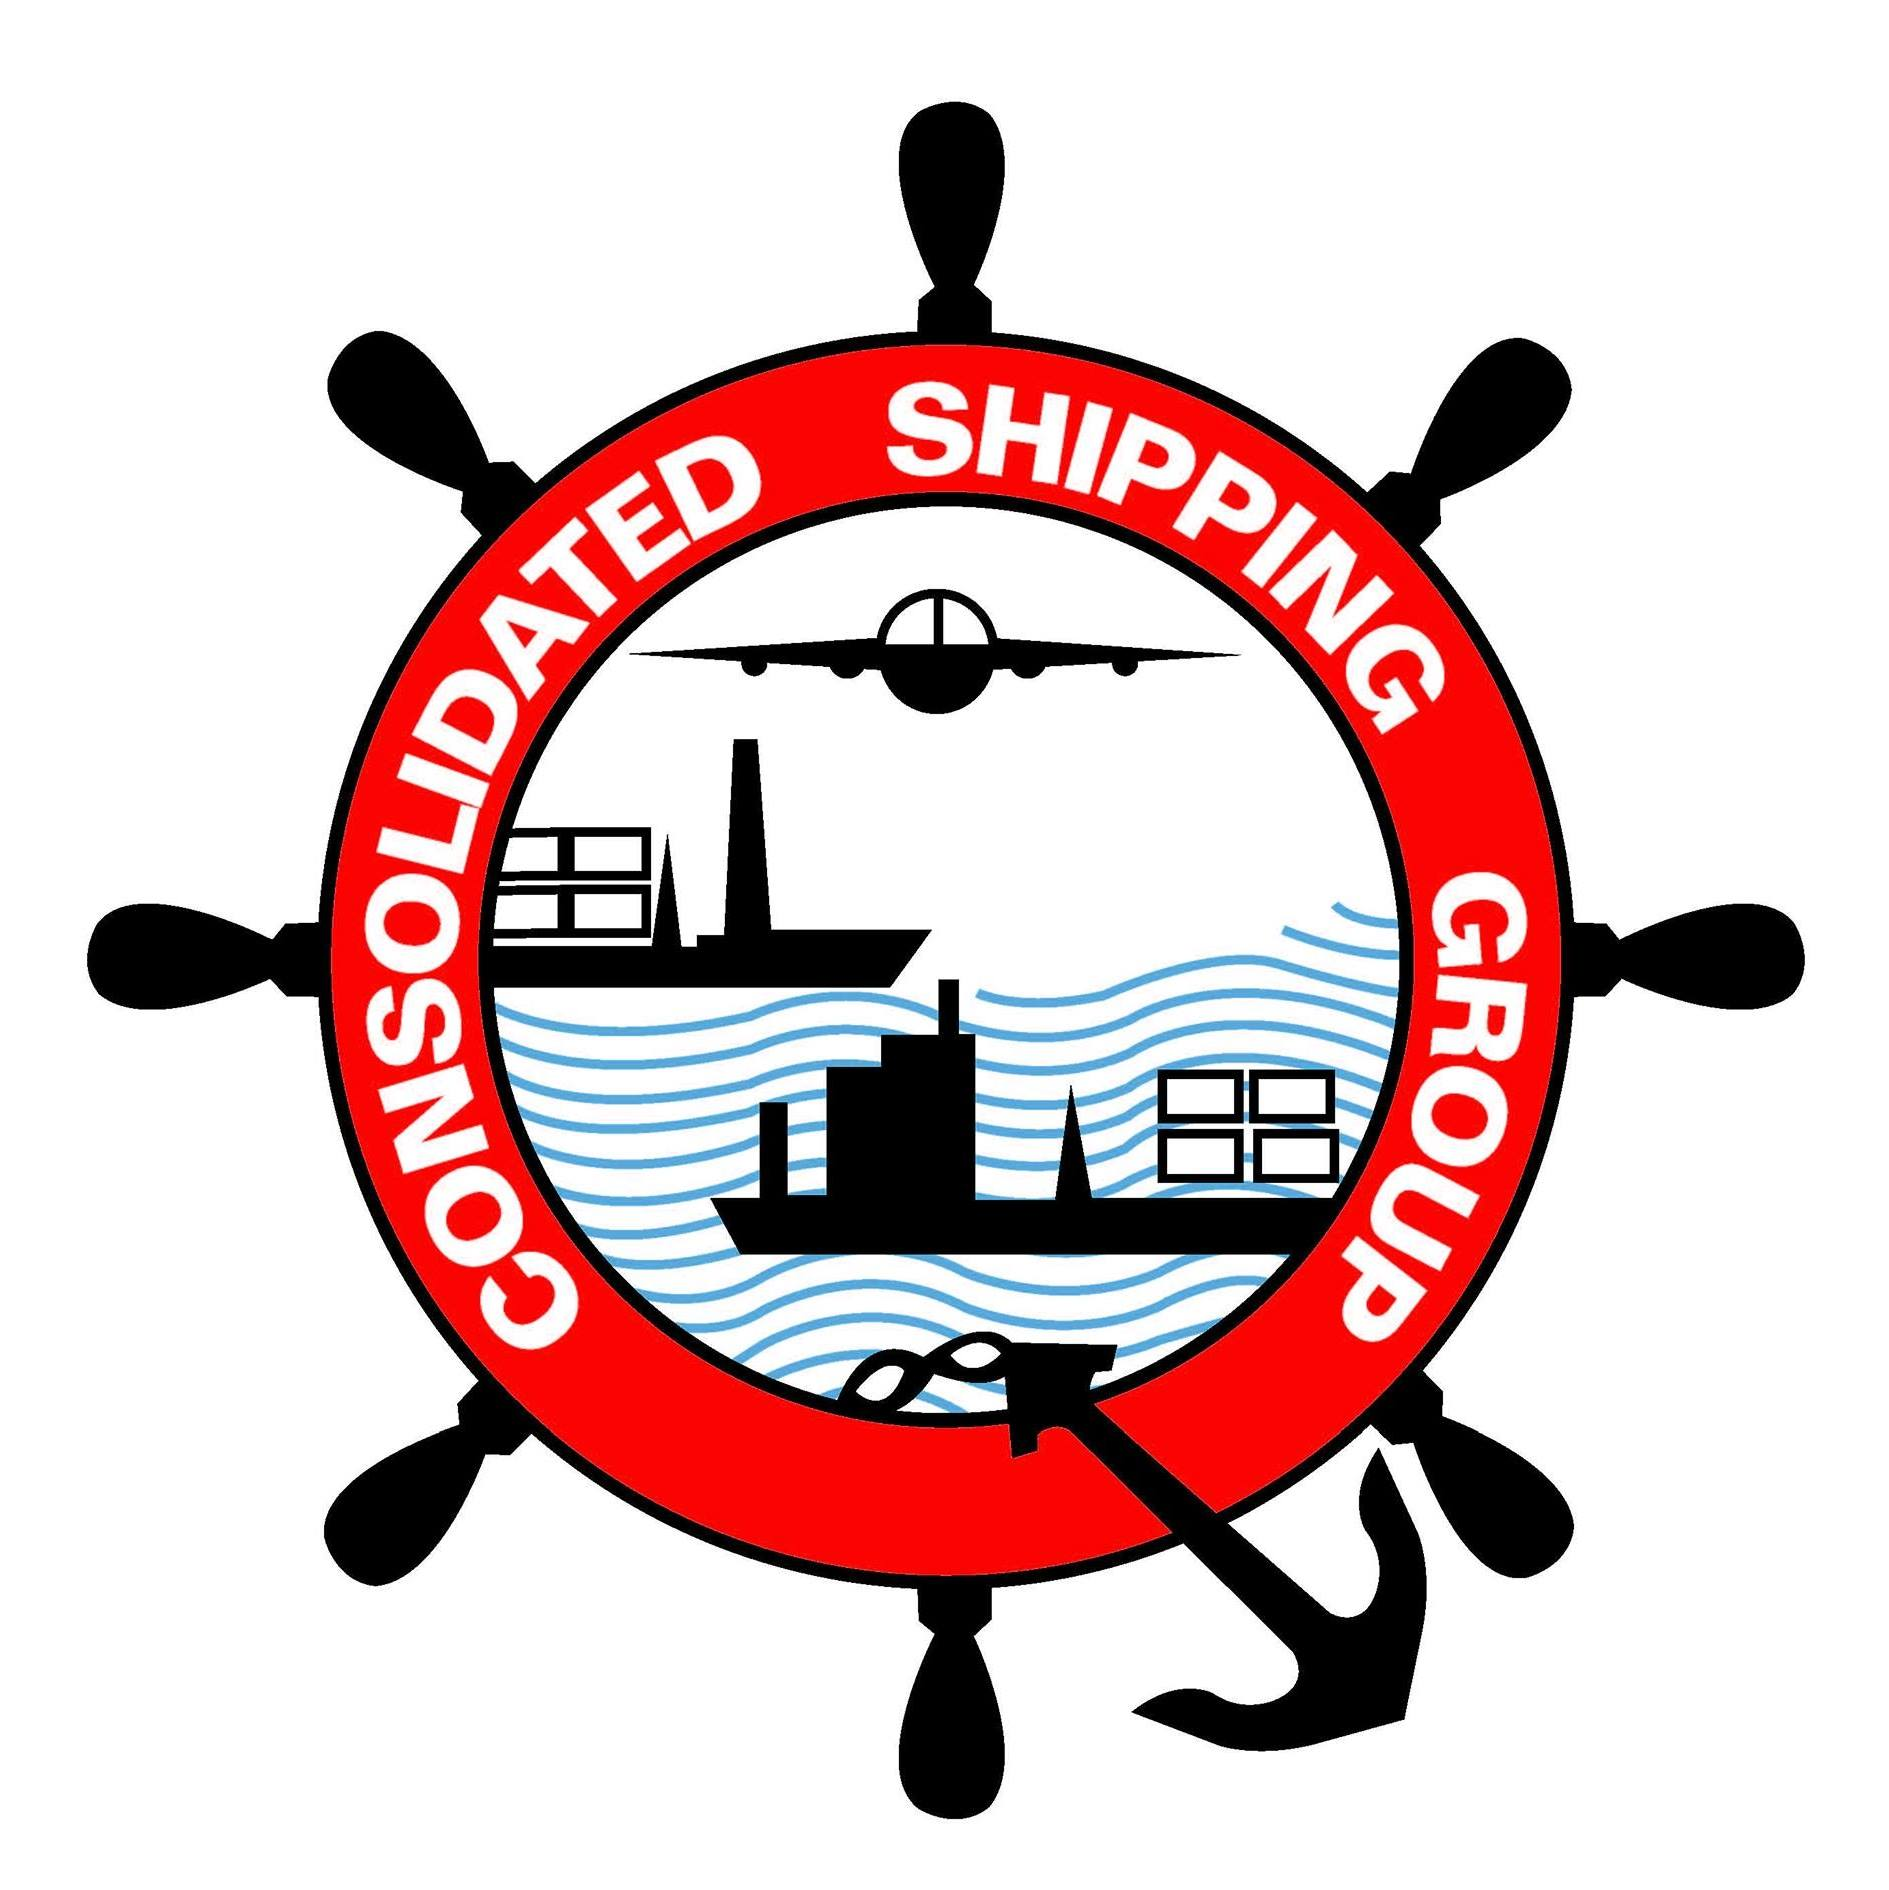 Consolidated Shipping Services LLC